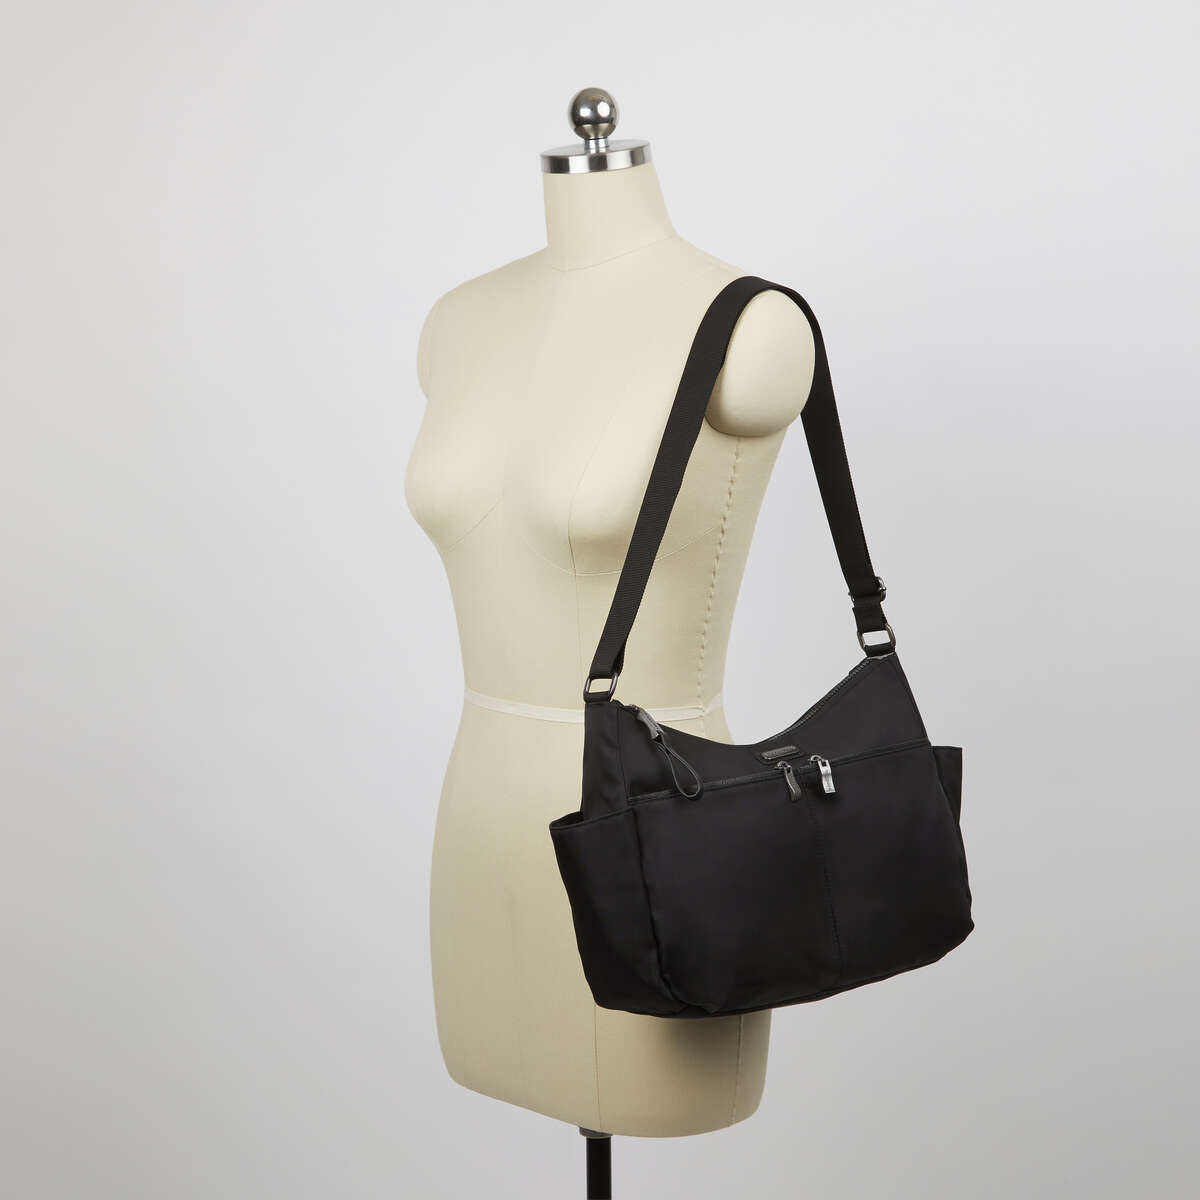 Baggallini West Village Hobo - Black